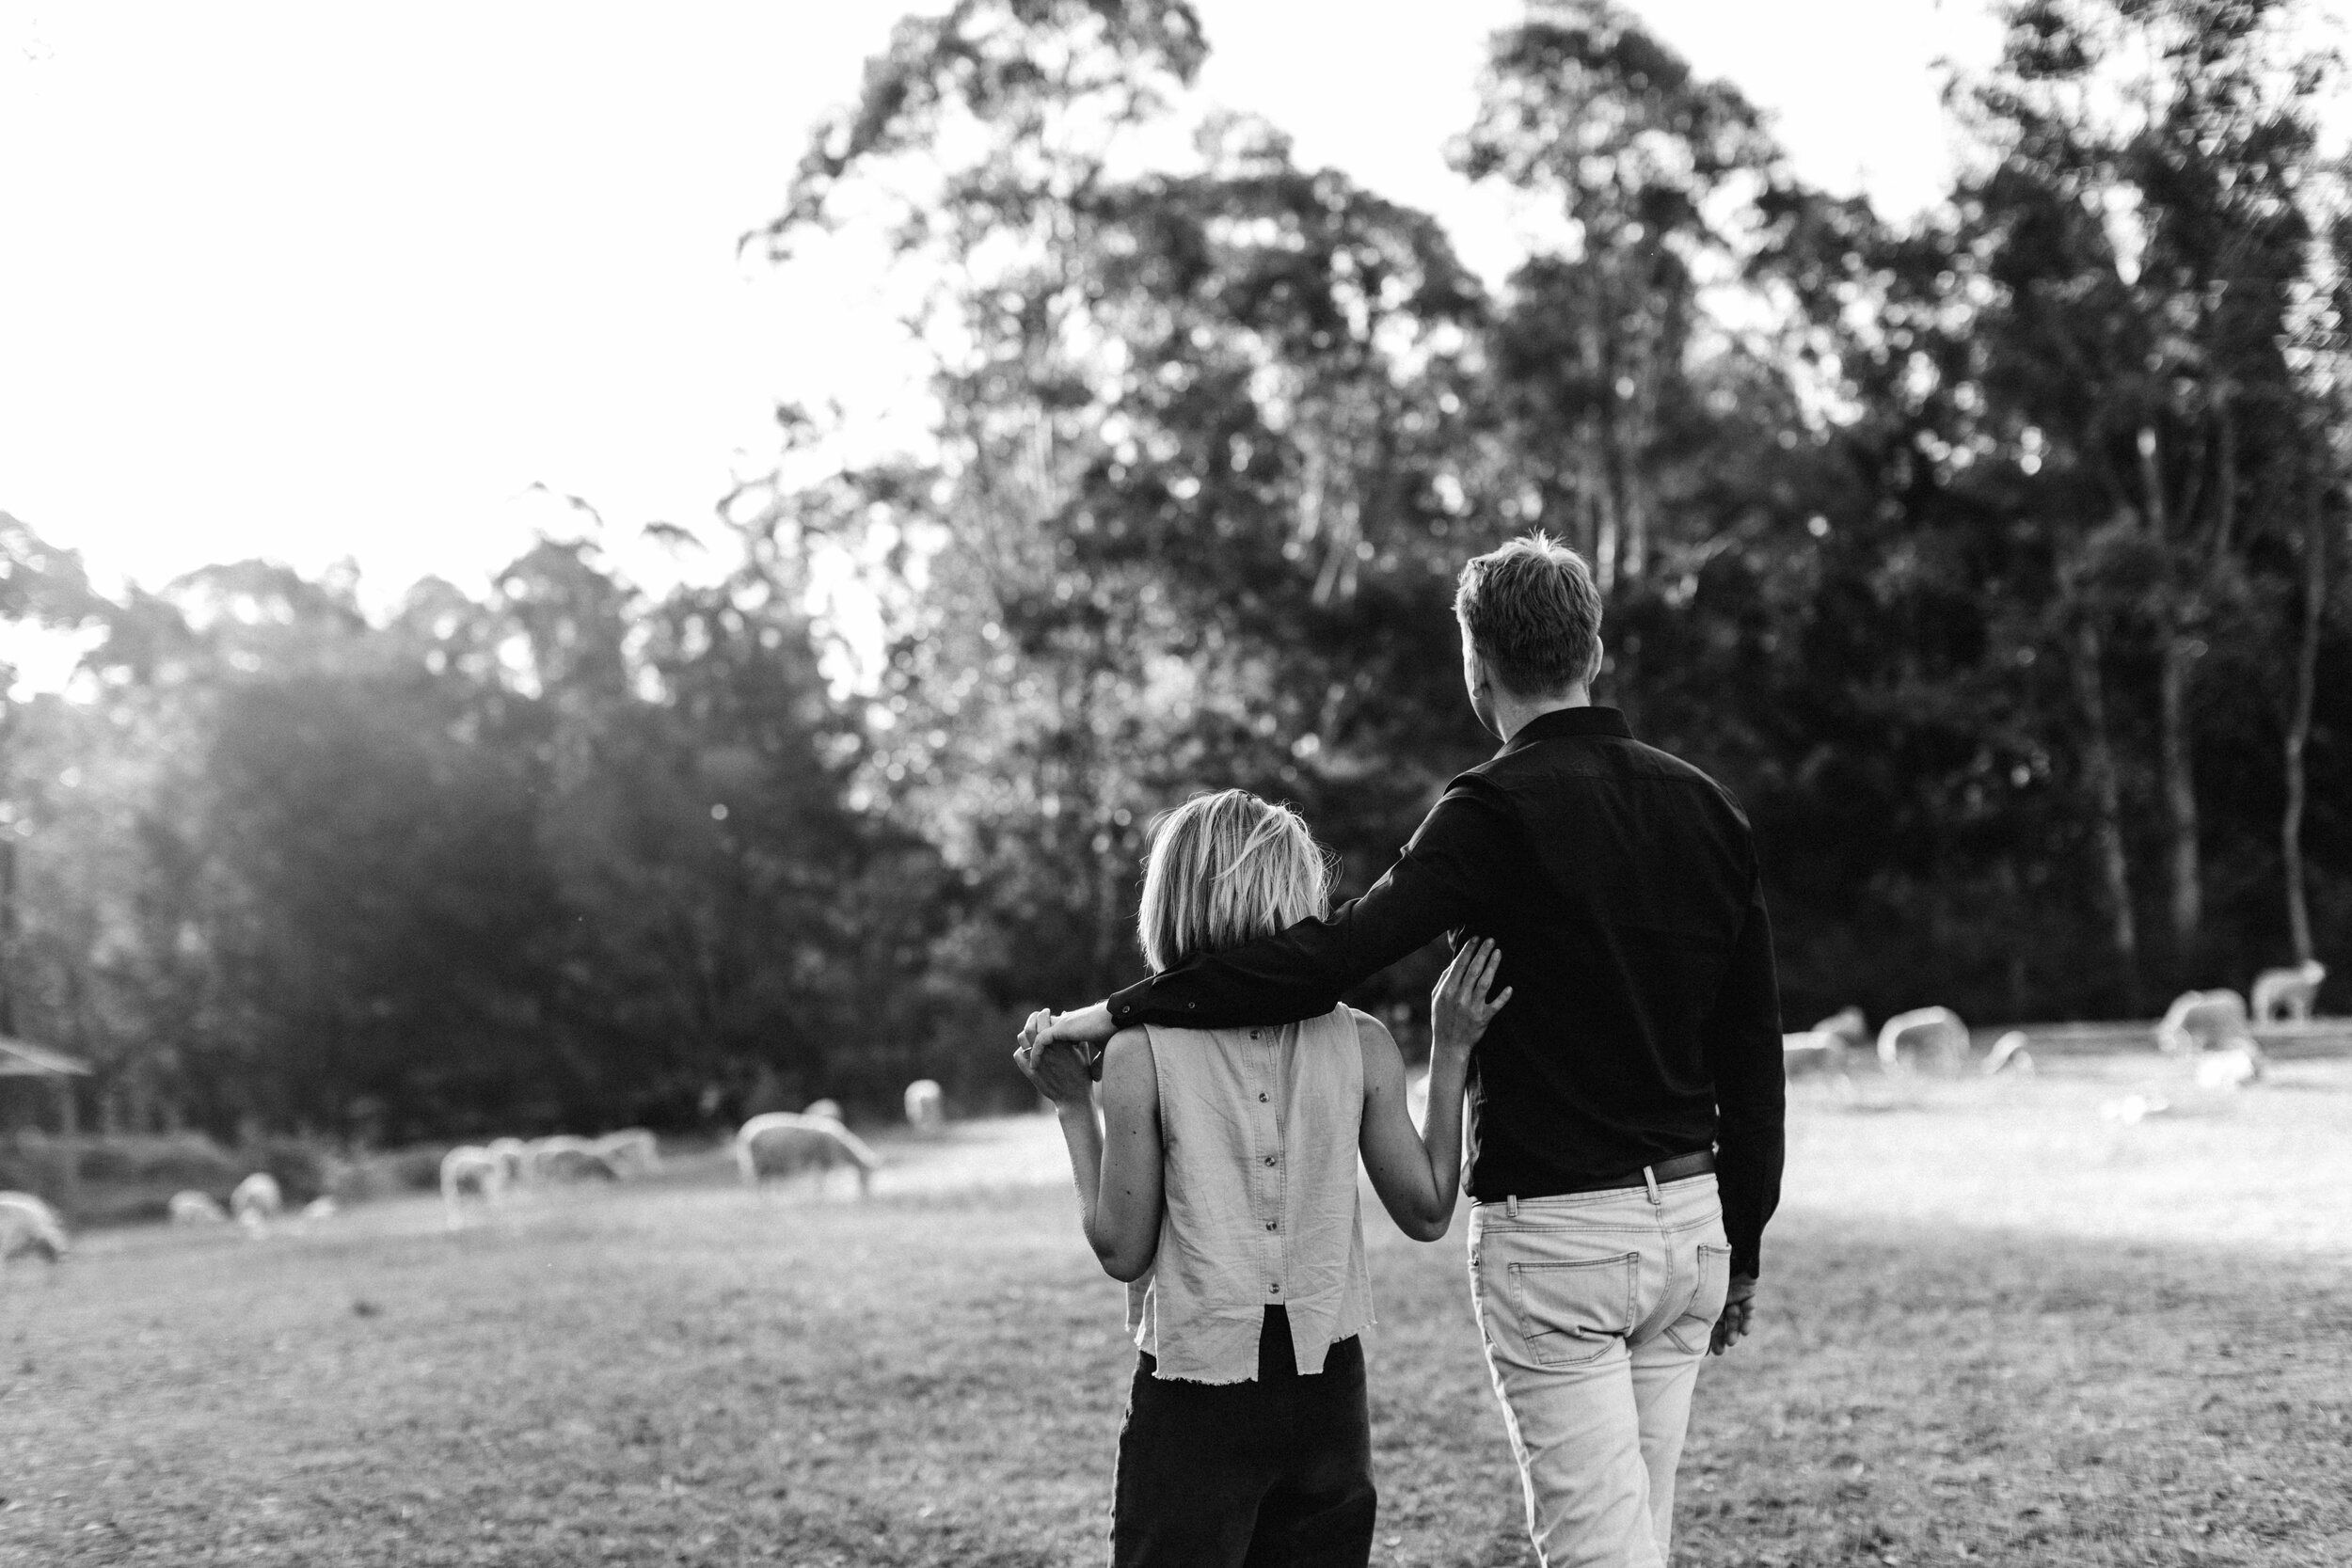 picton-engagement-photographer-wollondilly-david-esther-9.jpg